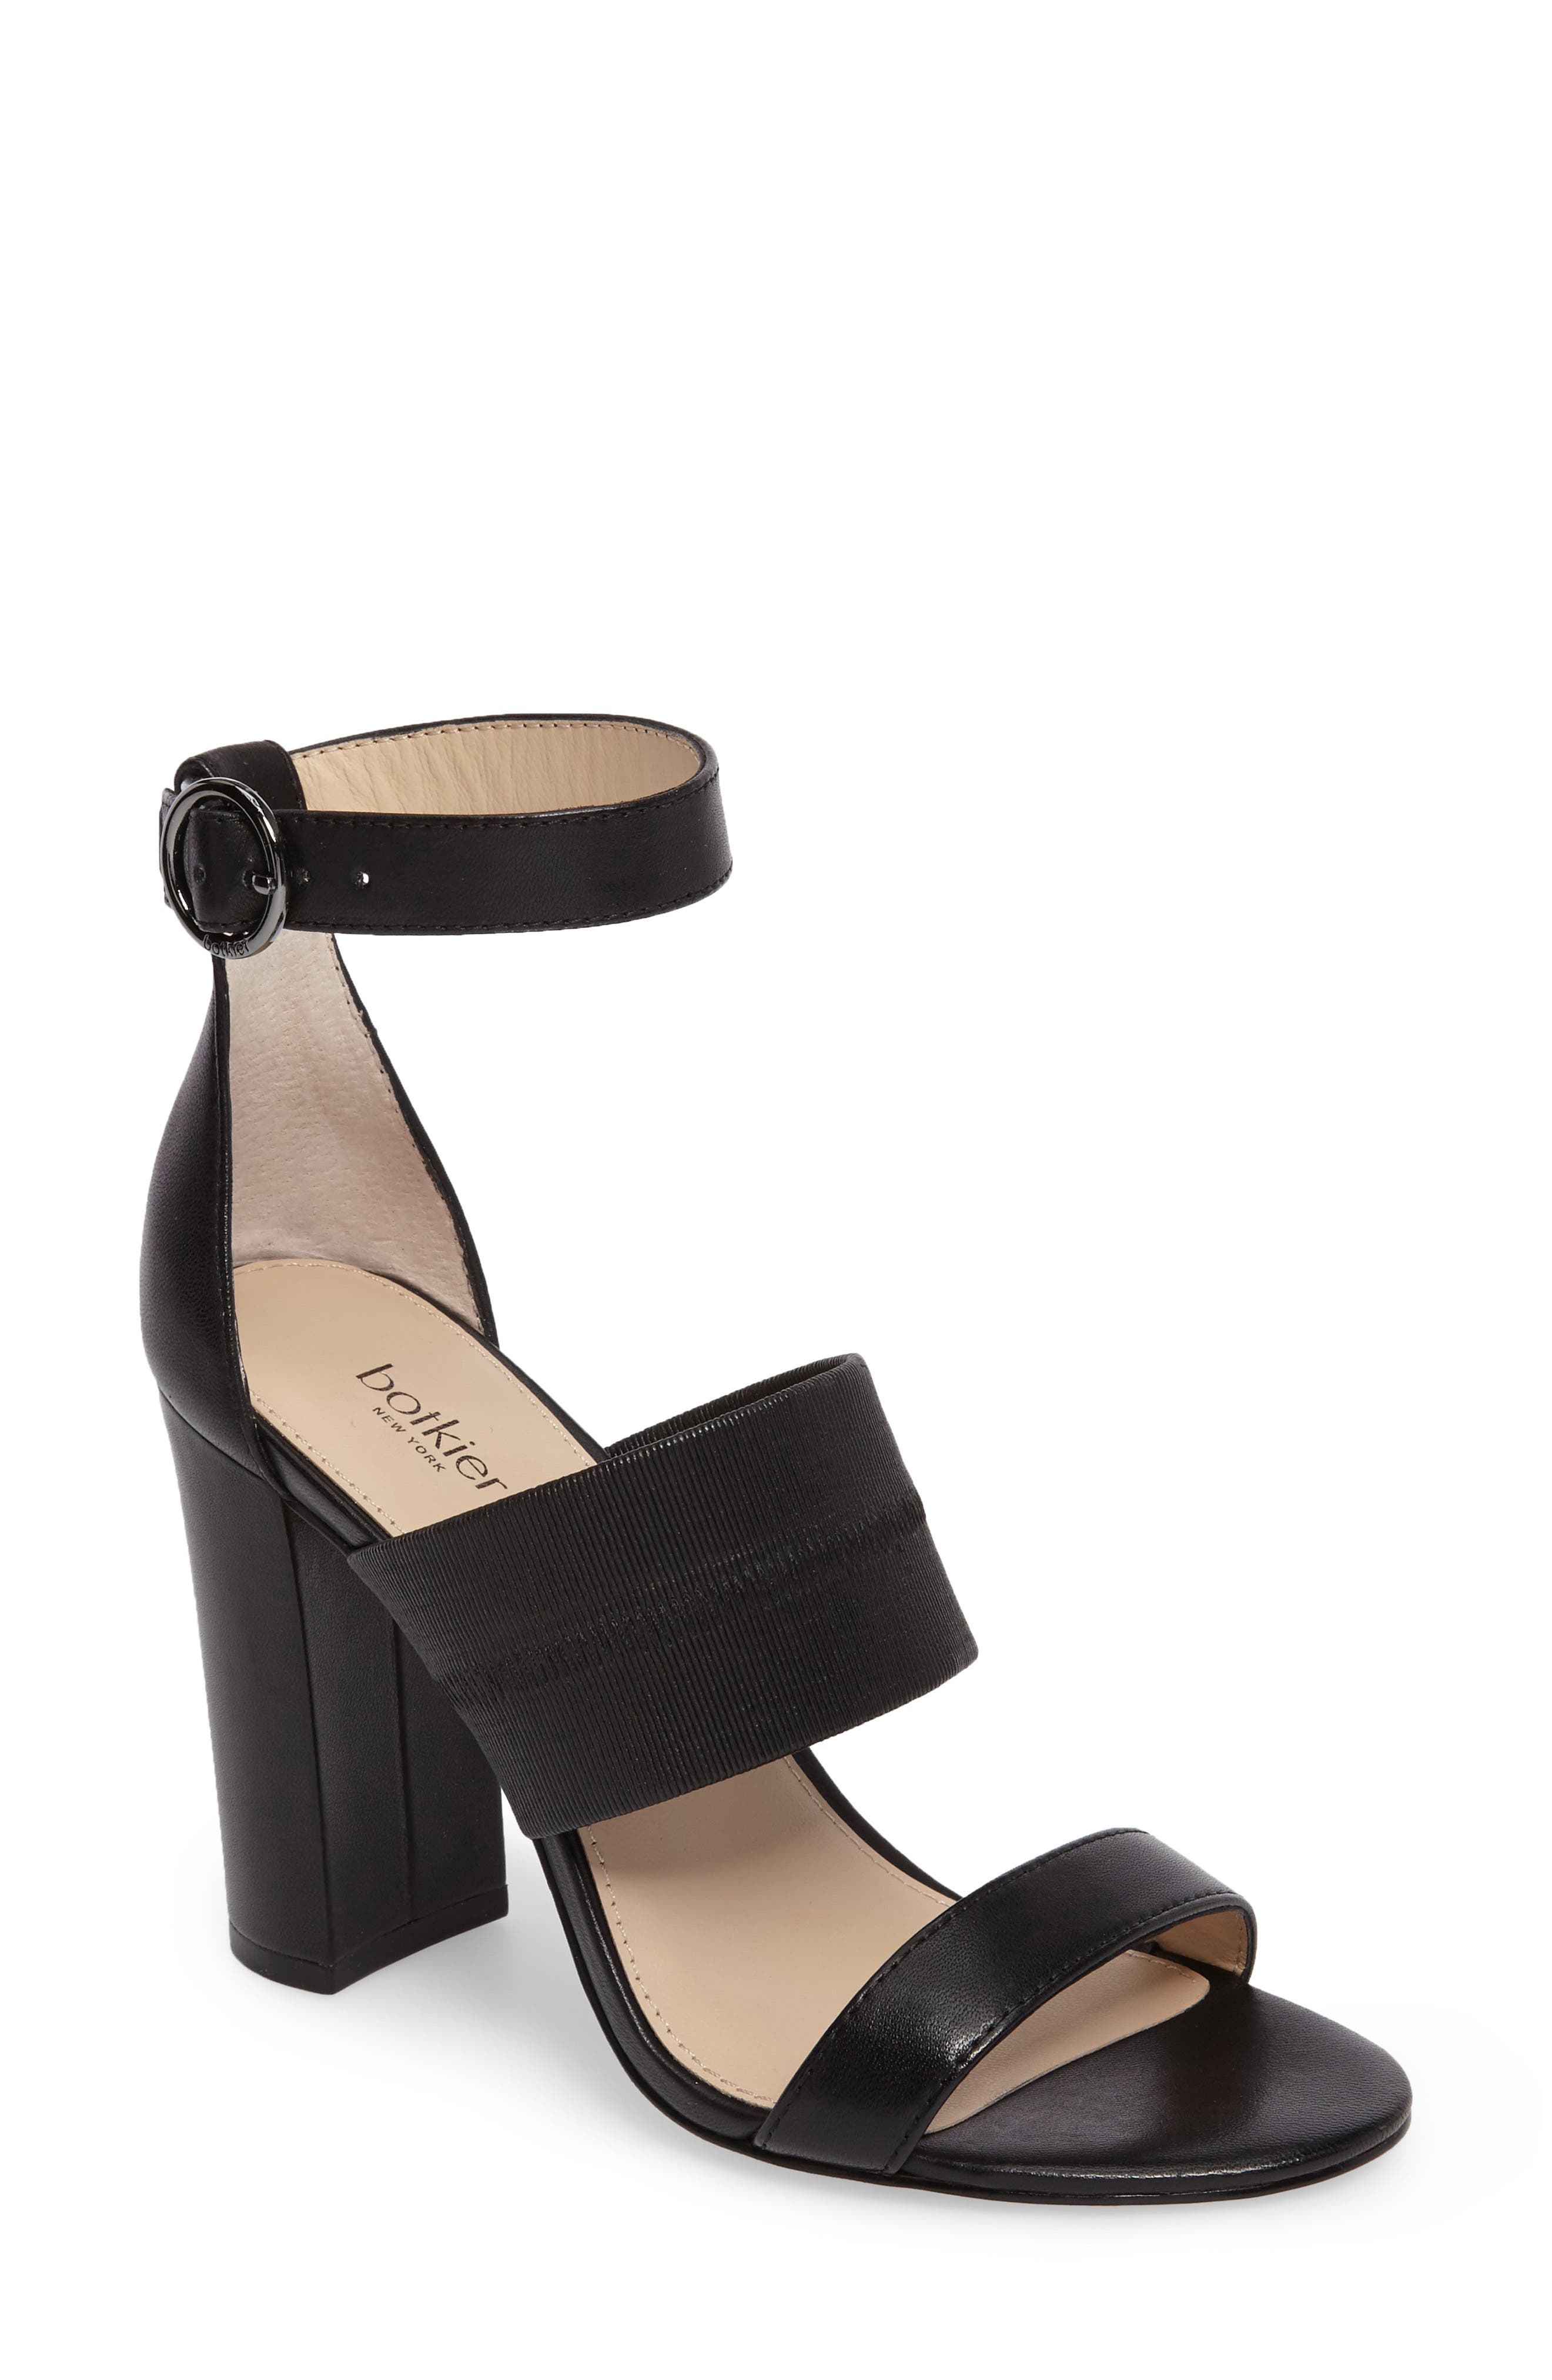 Alternate Image 1 Selected - Botkier Gisella Ankle Strap Sandal (Women)